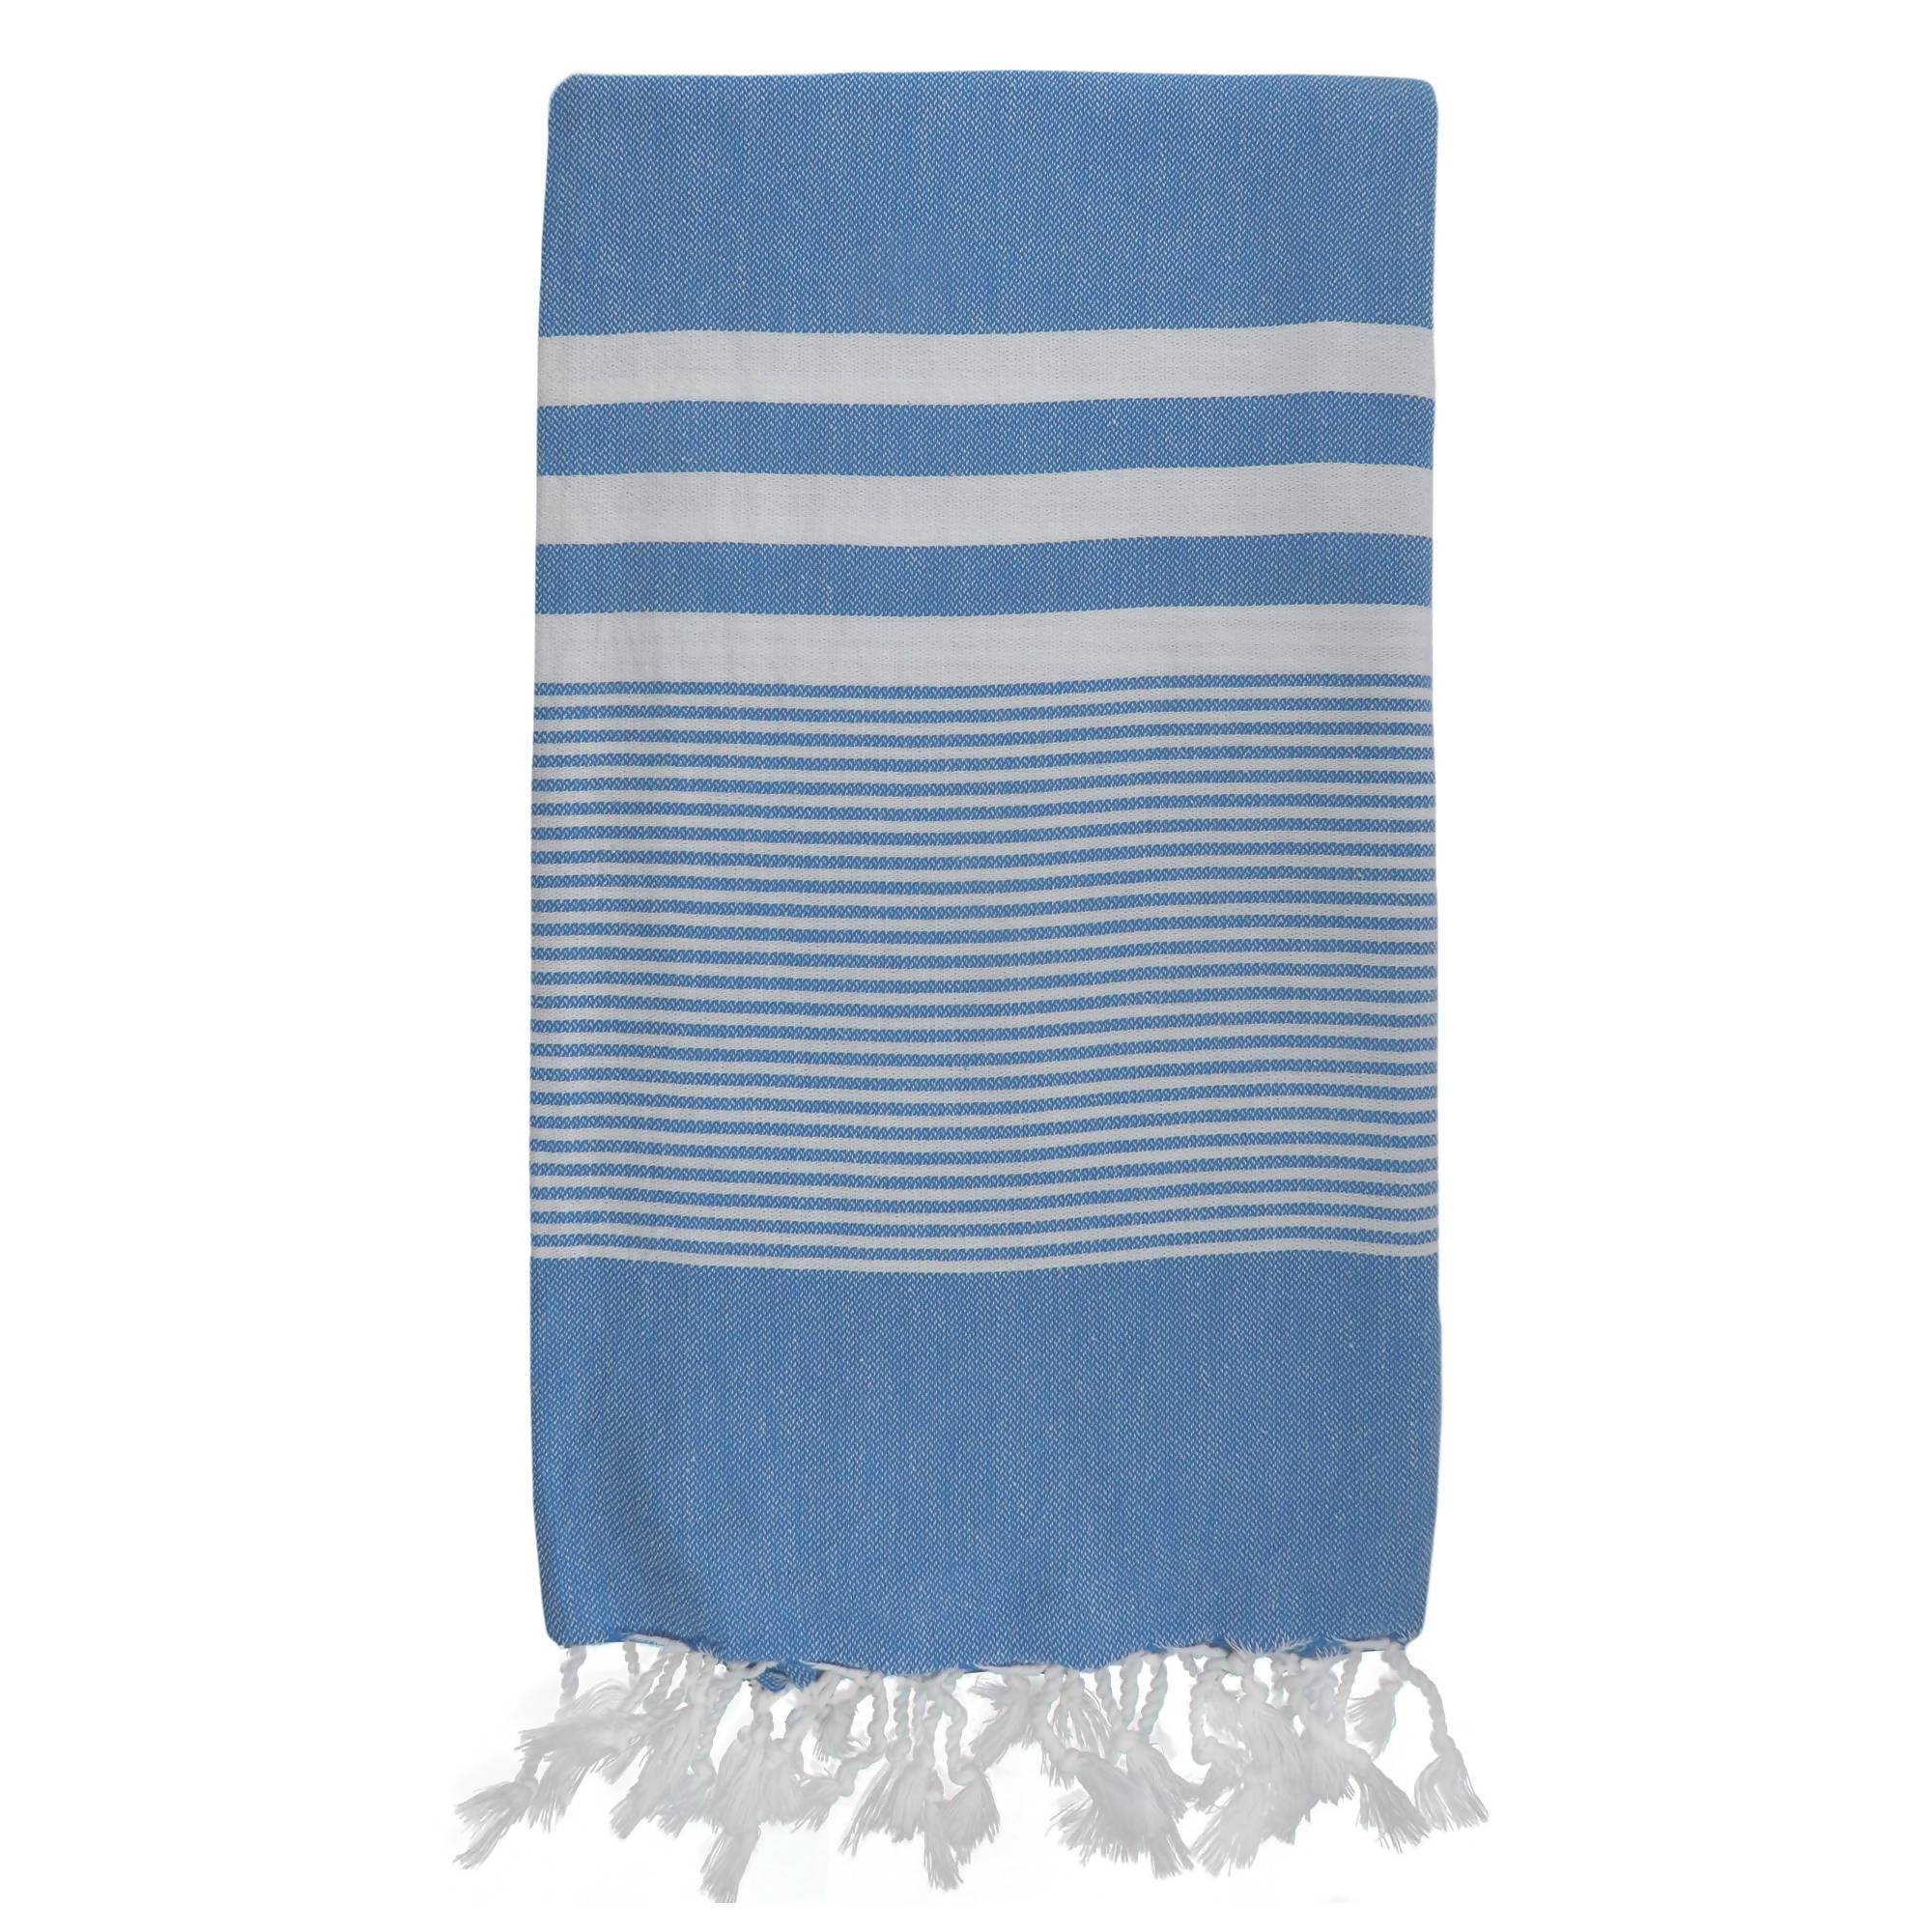 Aegean Turkish Towel - Beach Towels - Turquoise Beach Co - Naiise